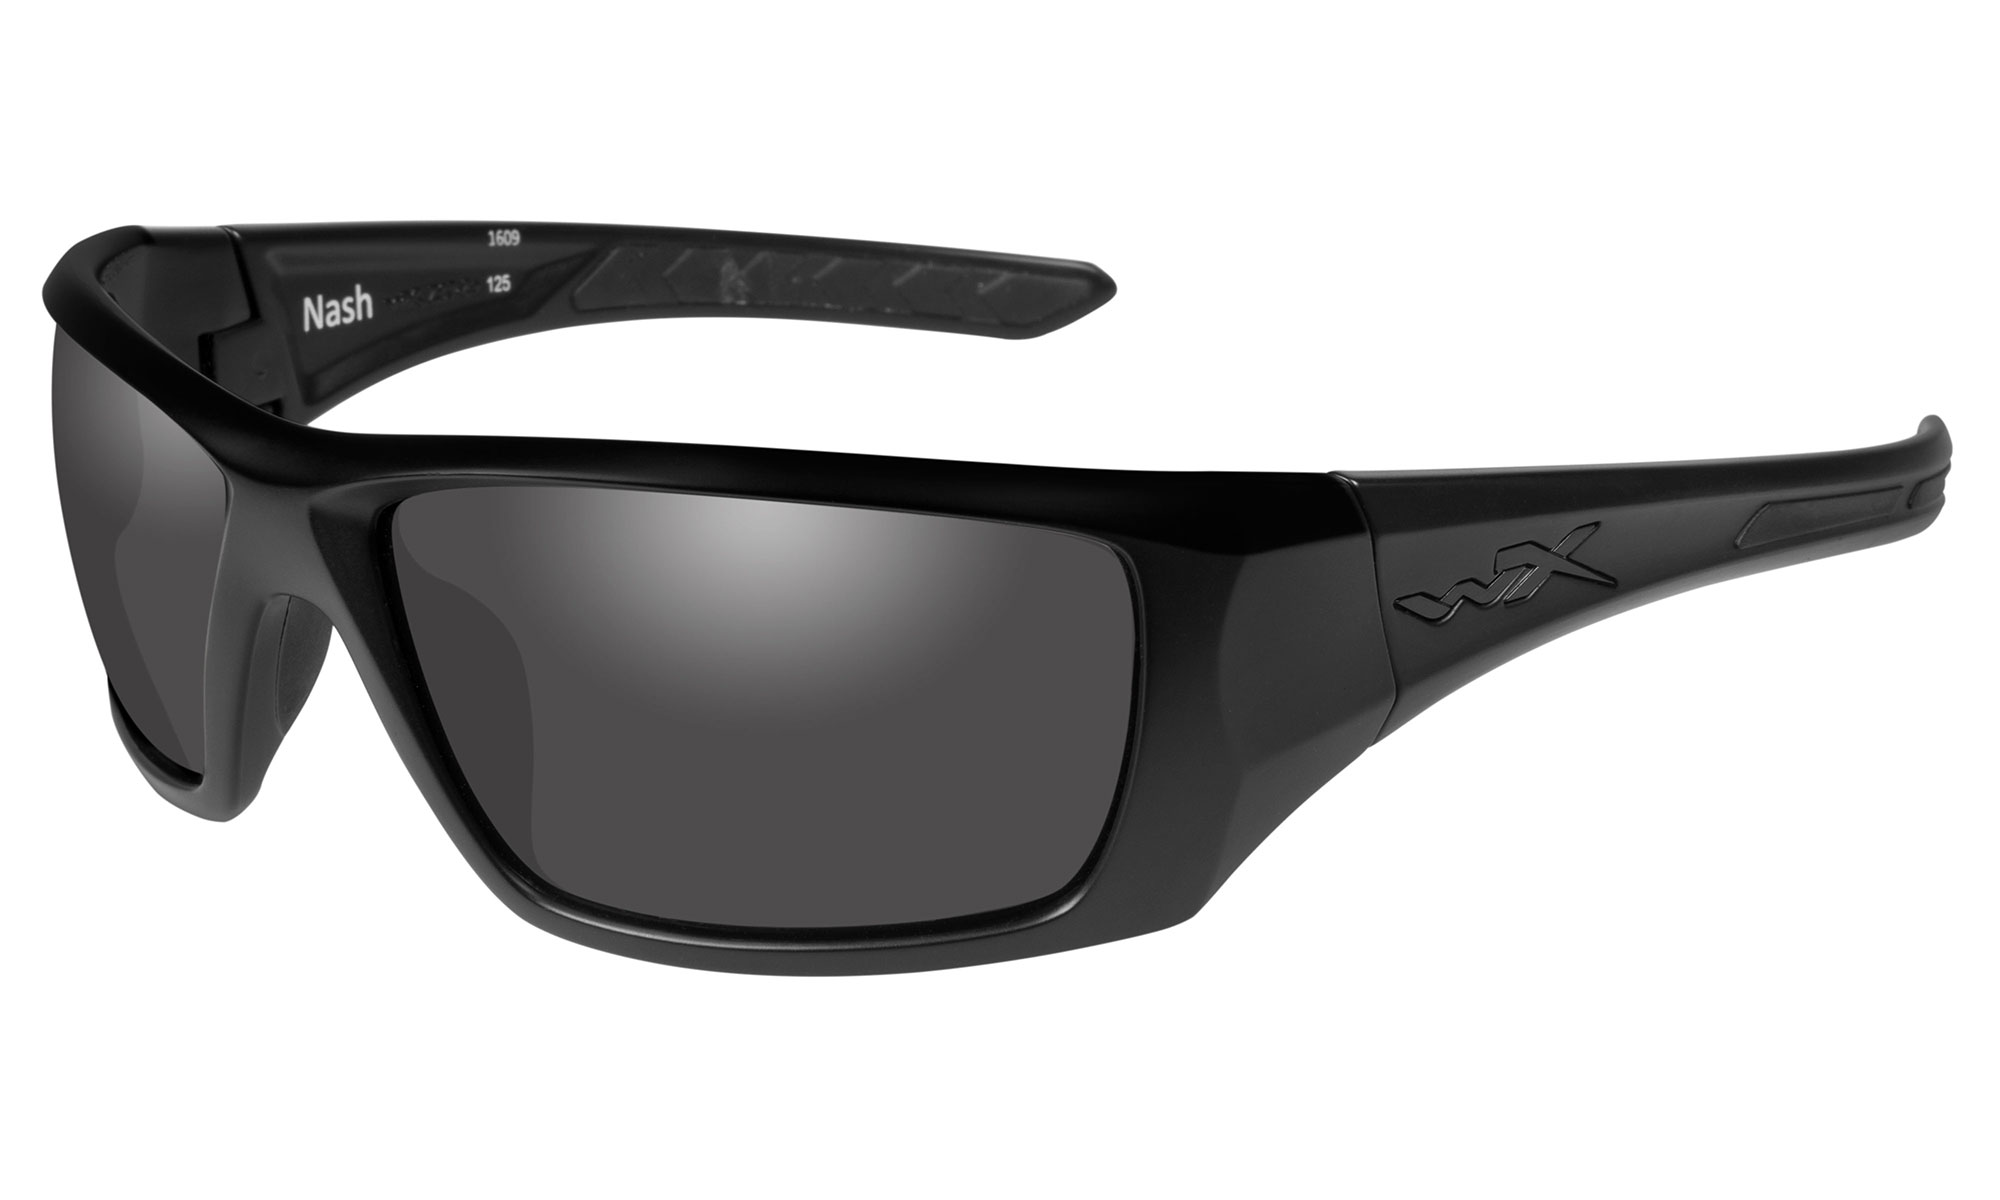 8d9bef43c77535 Wiley X Sunglasses and Safety Glasses - USA Online Store